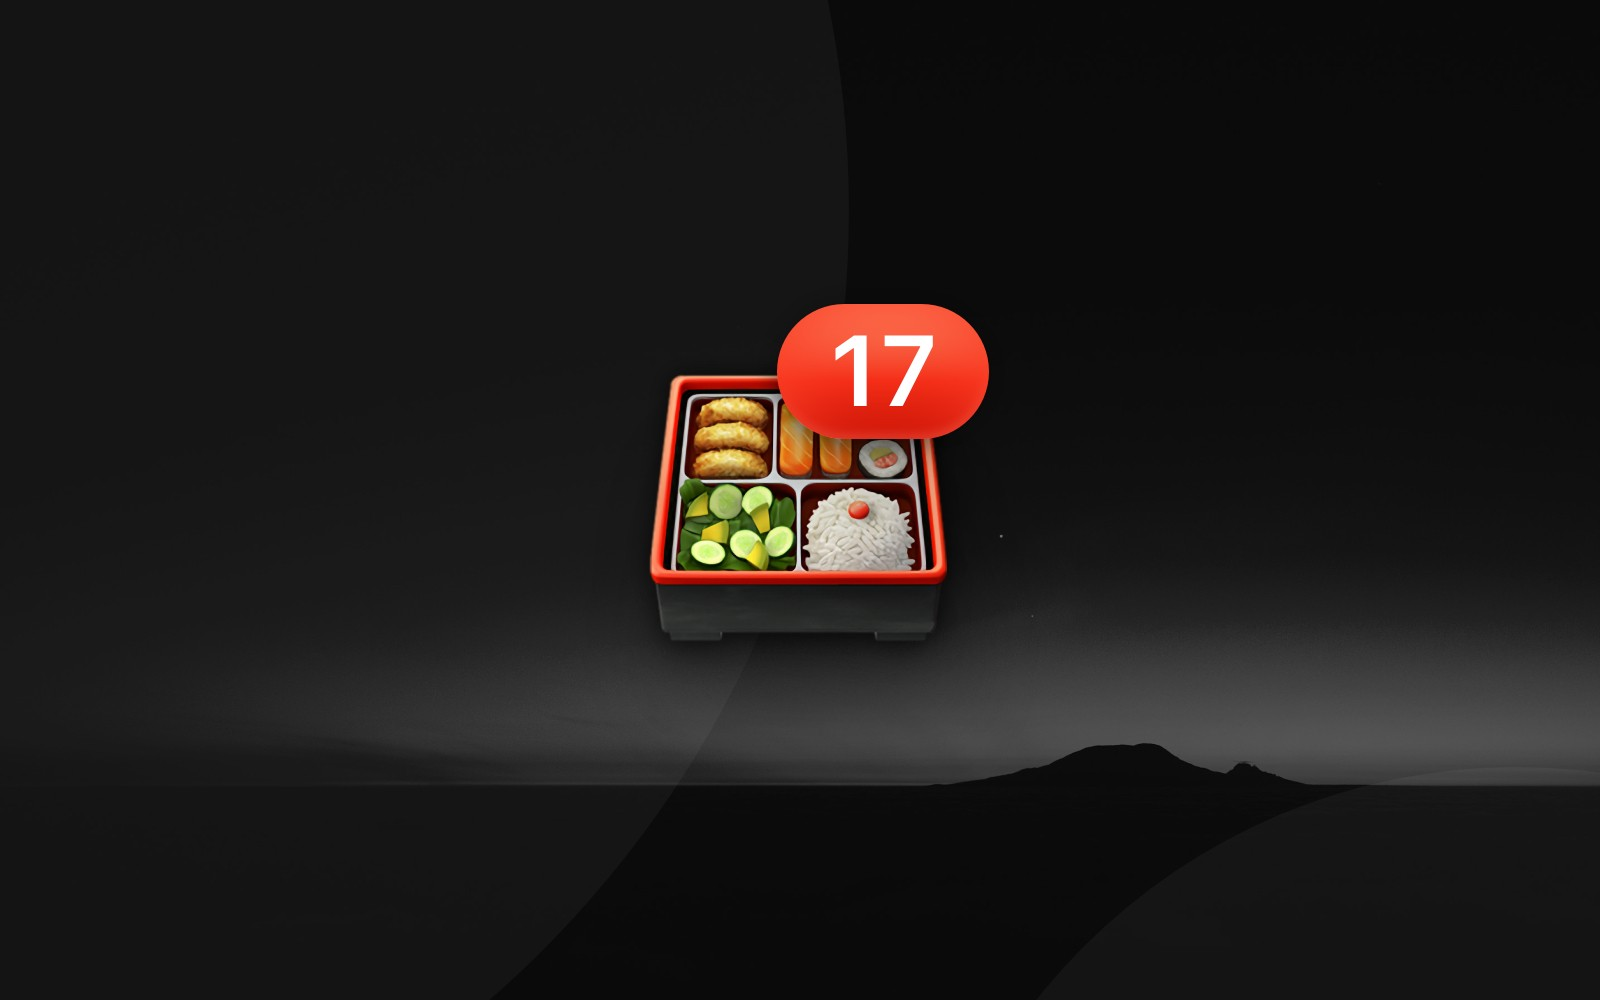 Bento box emoji with number 17 badge resting on a faded sunset